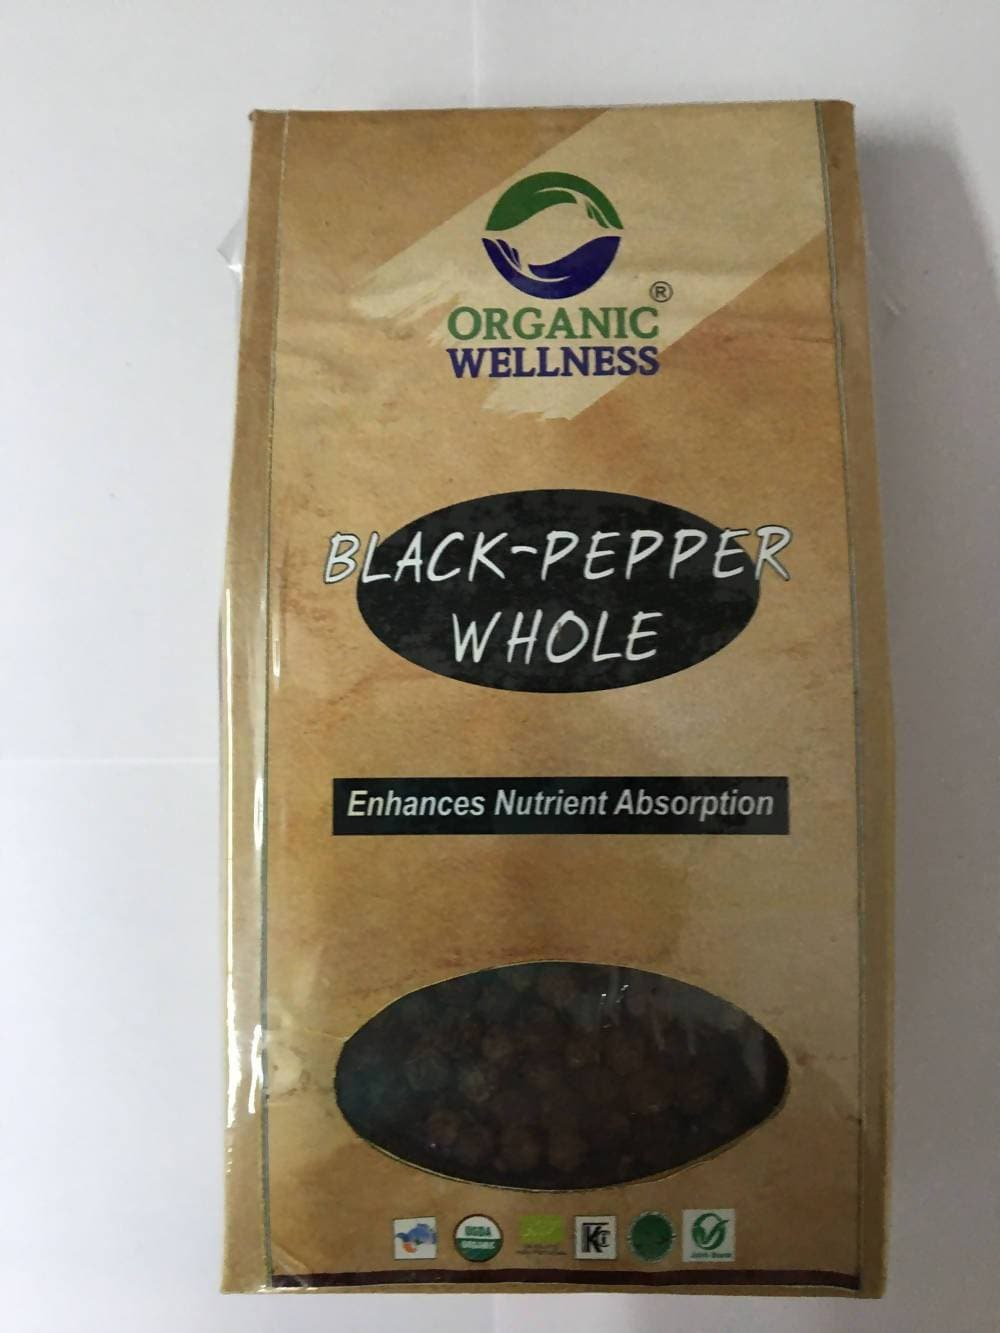 Organic Wellness Black Pepper Whole